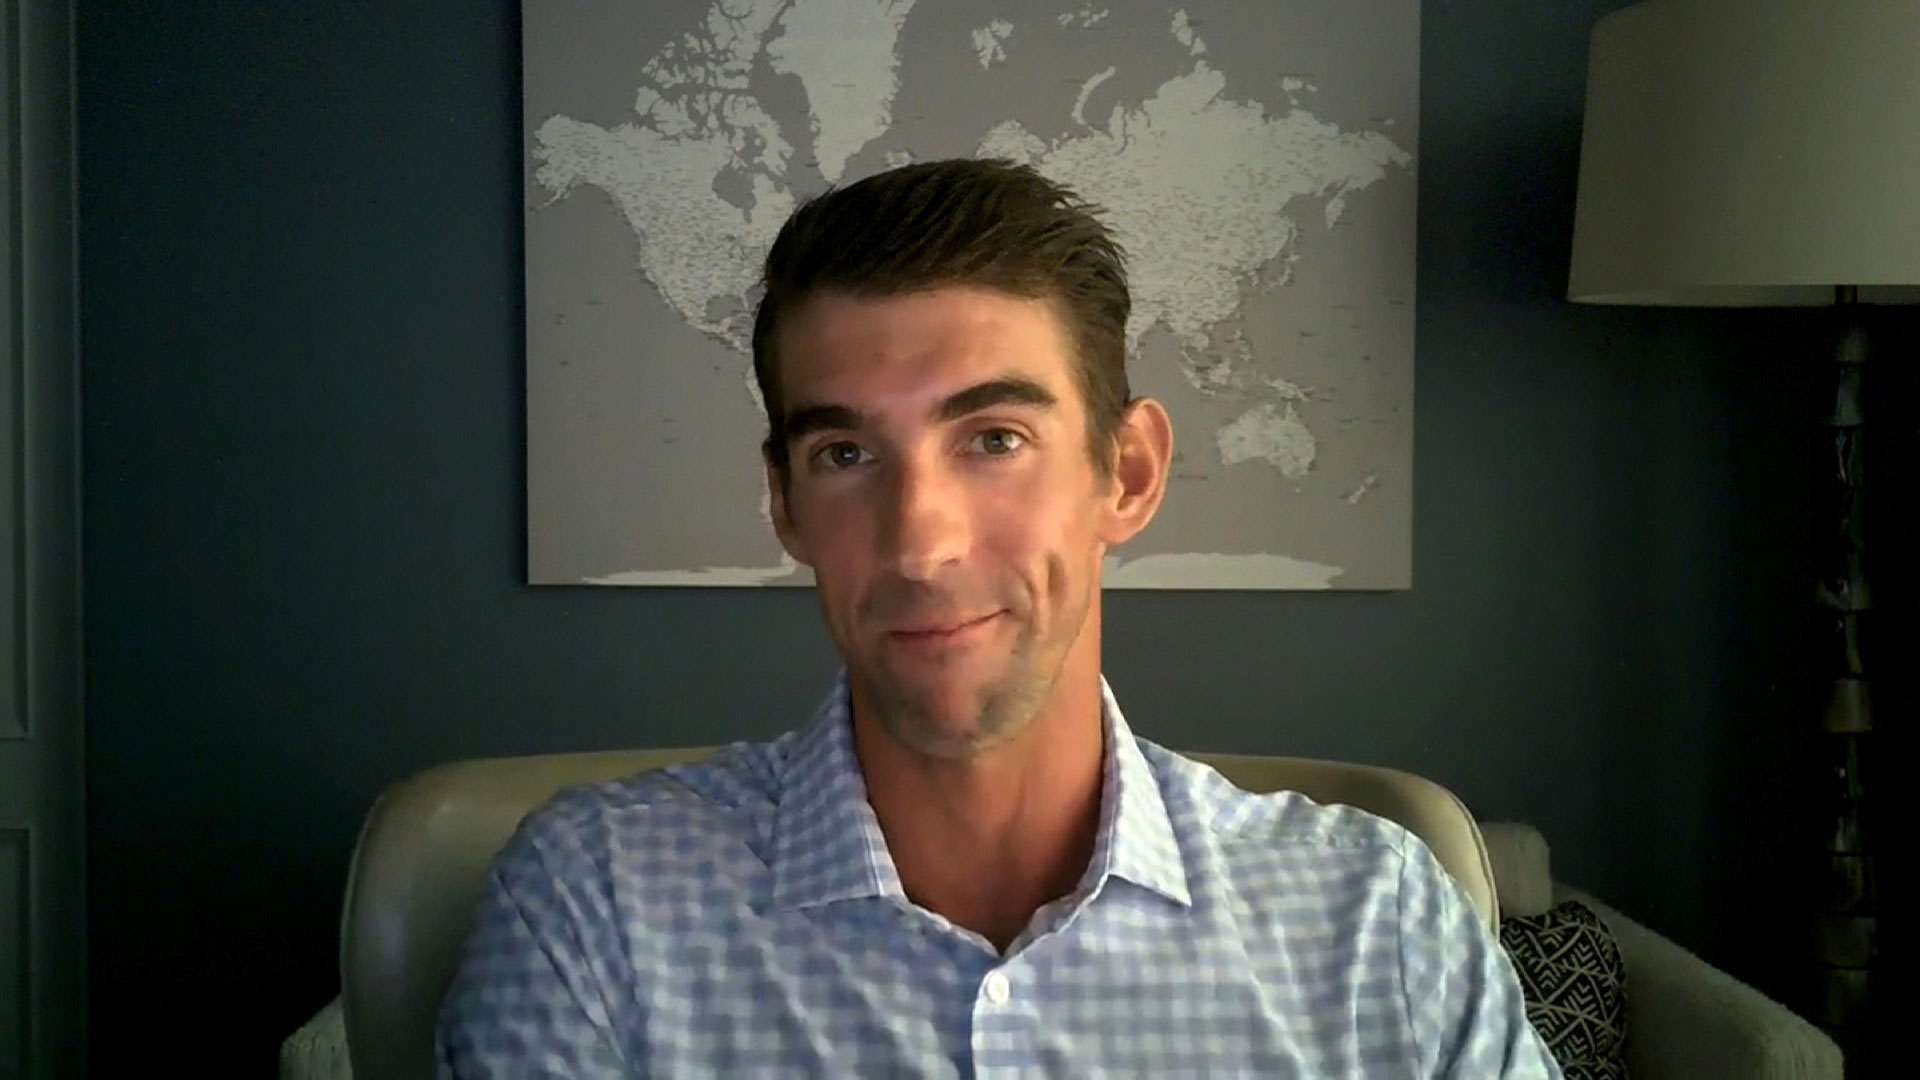 Olympic gold medalist Michael Phelps speaks with CNN on August 6.